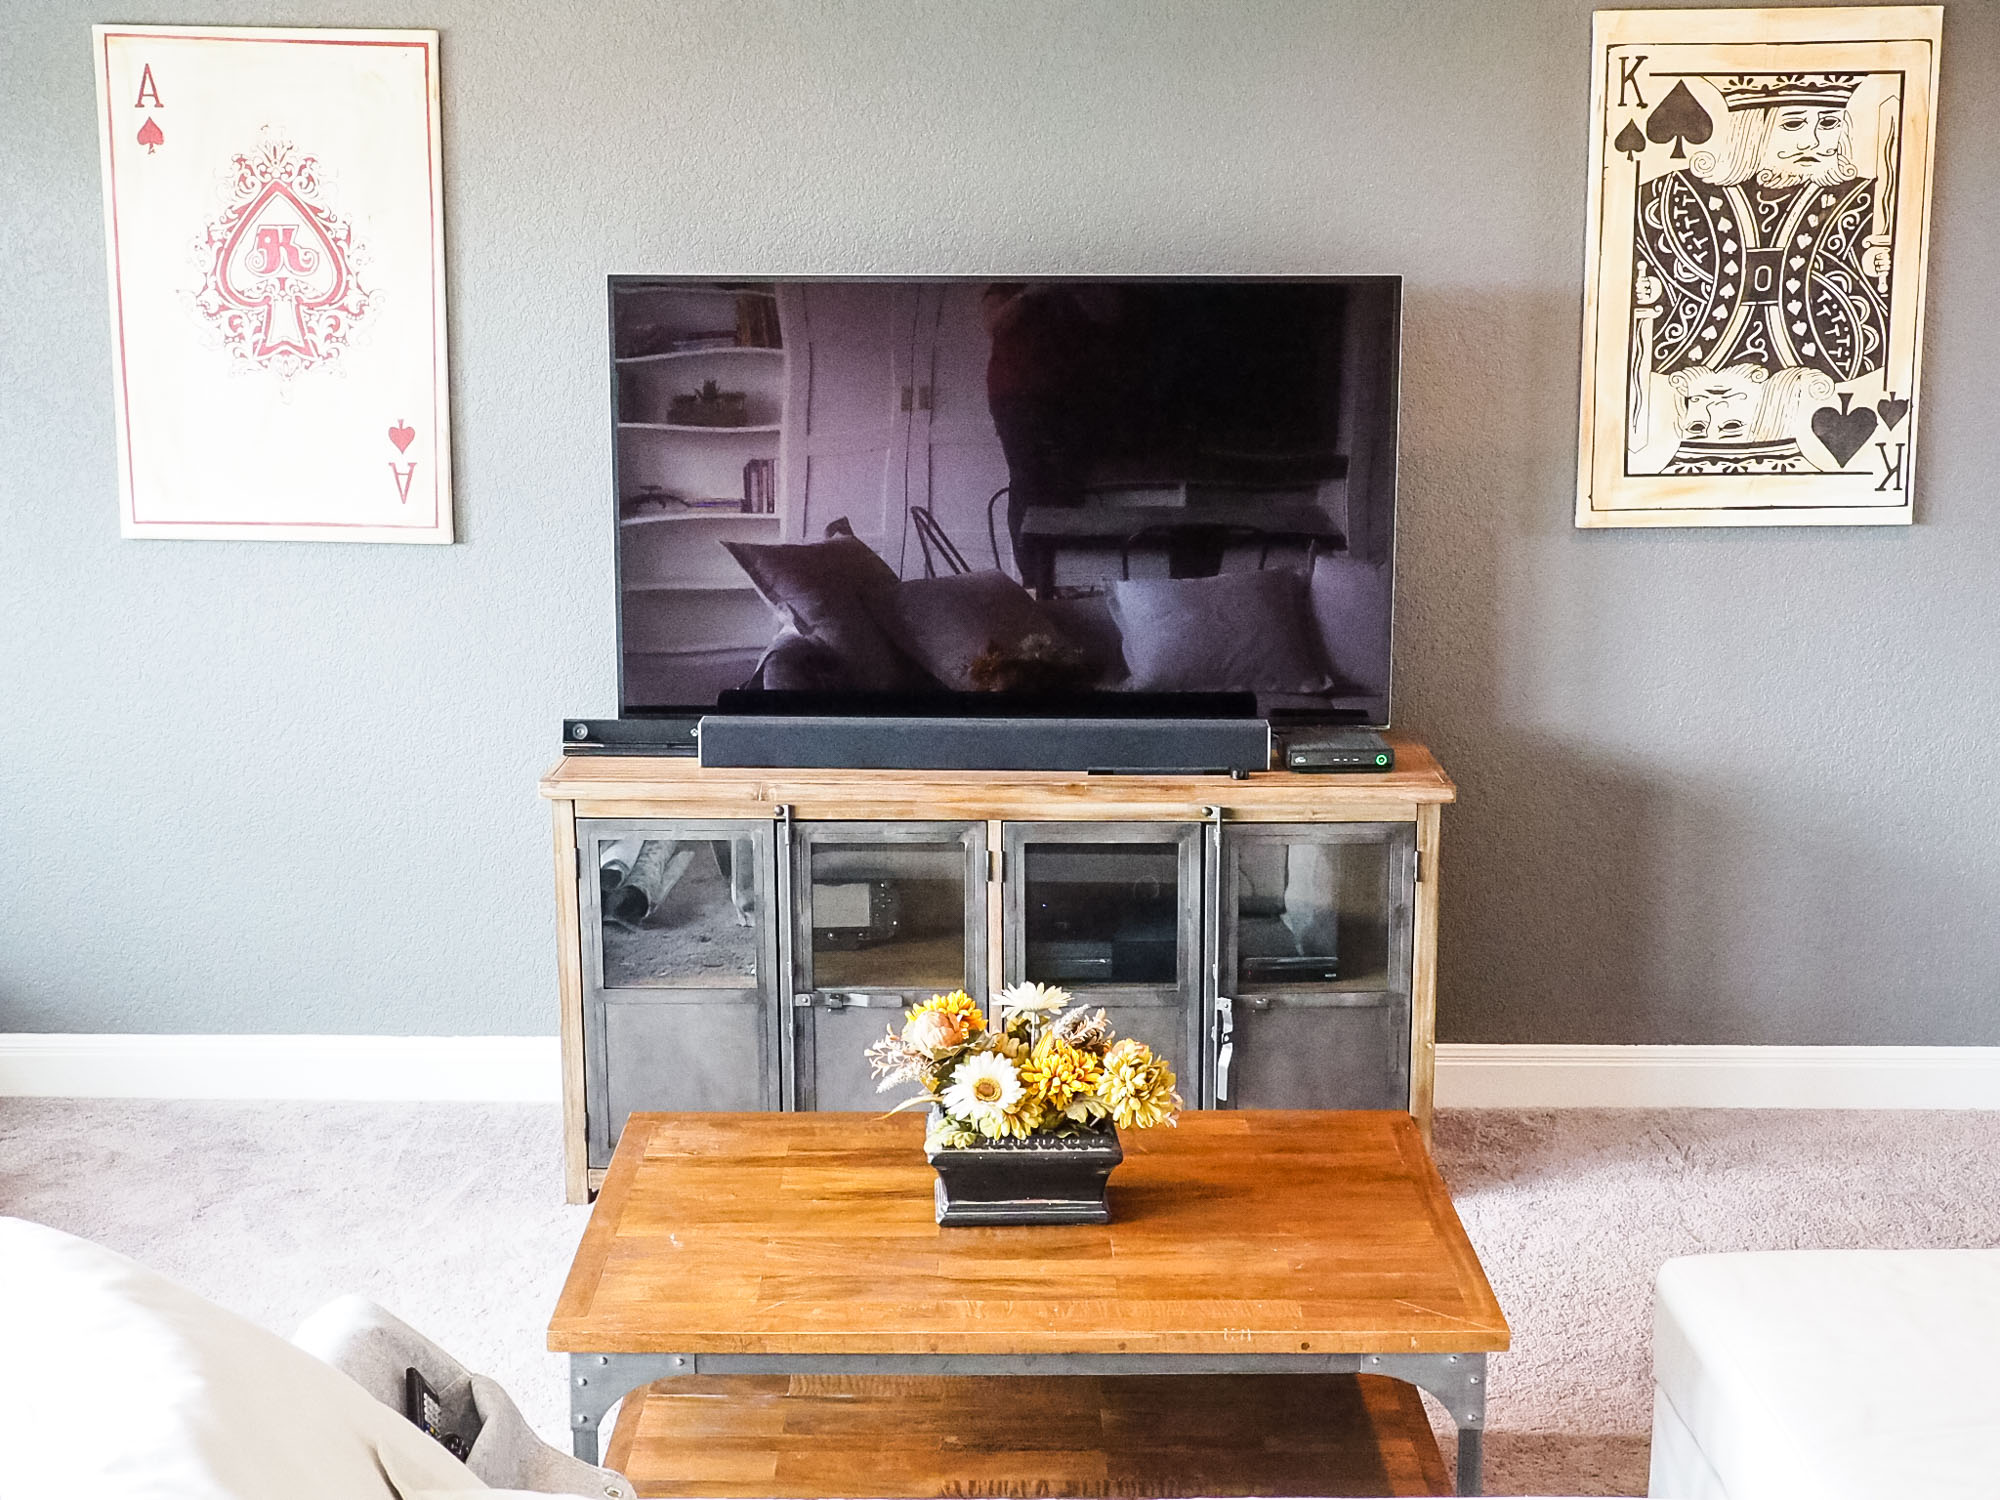 You can see in the TV reflection how sleek the IKEA stuff is on the opposite wall. I love the balance of these rustic/industrial pieces, and how the wood warms up the space.